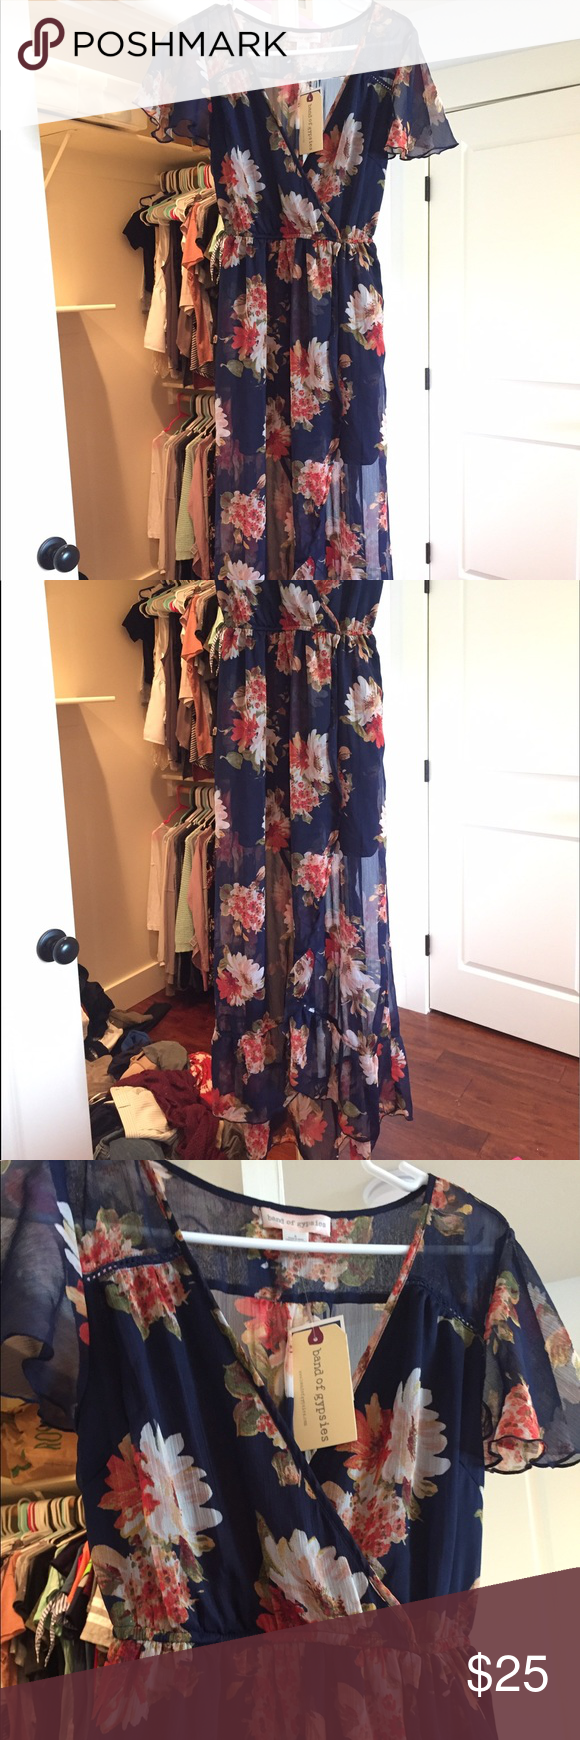 Floral print wrap dress Gorgeous dress for any summer occasion! Tags still attached, never worn. Bought it for a wedding and ended up not wearing it Dresses High Low